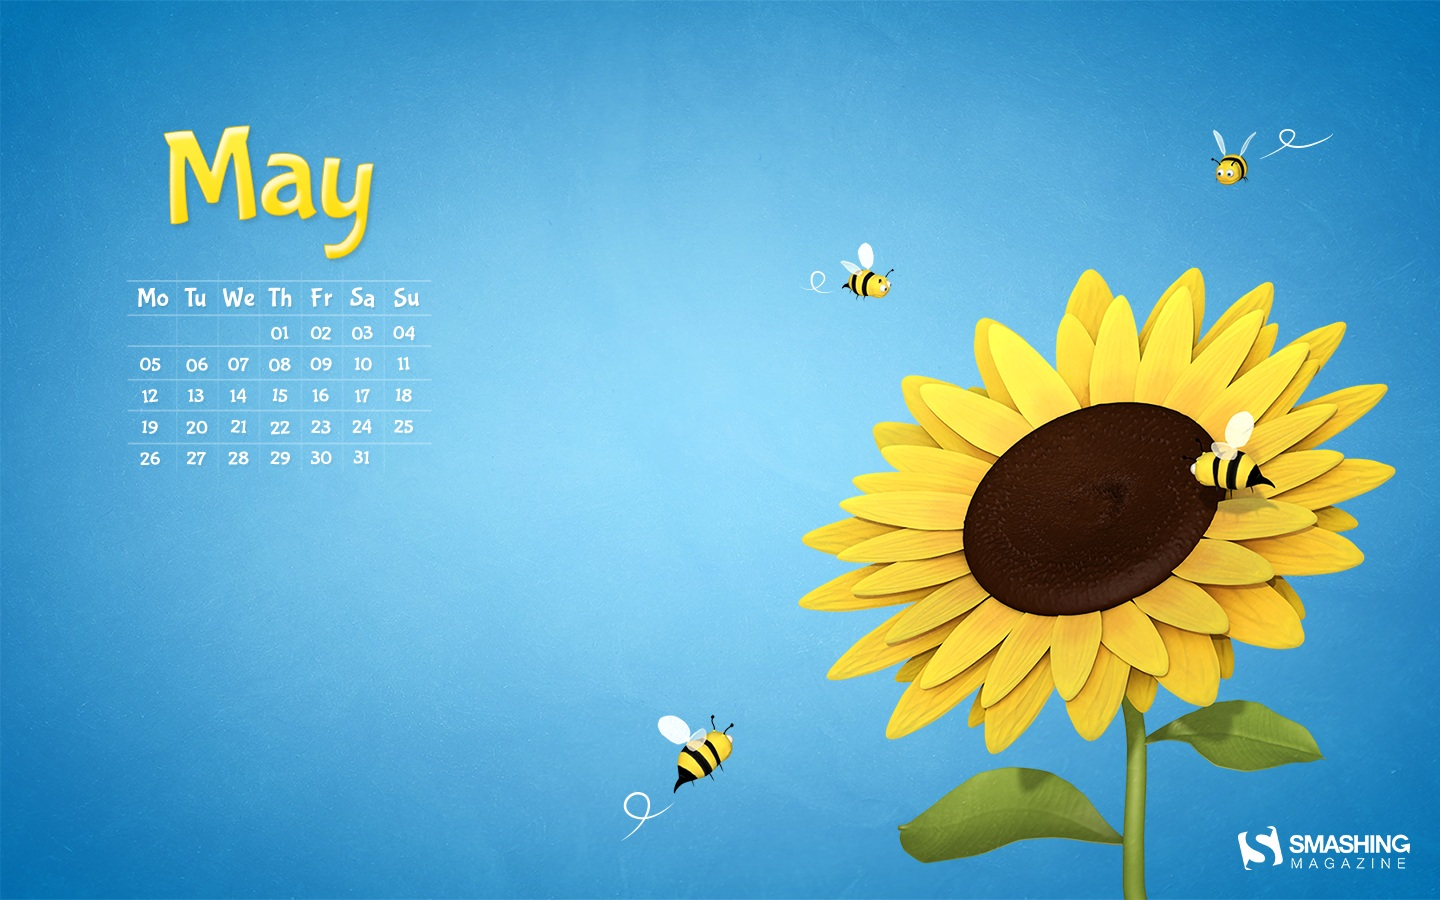 In January Calendar Wallpaper 50584